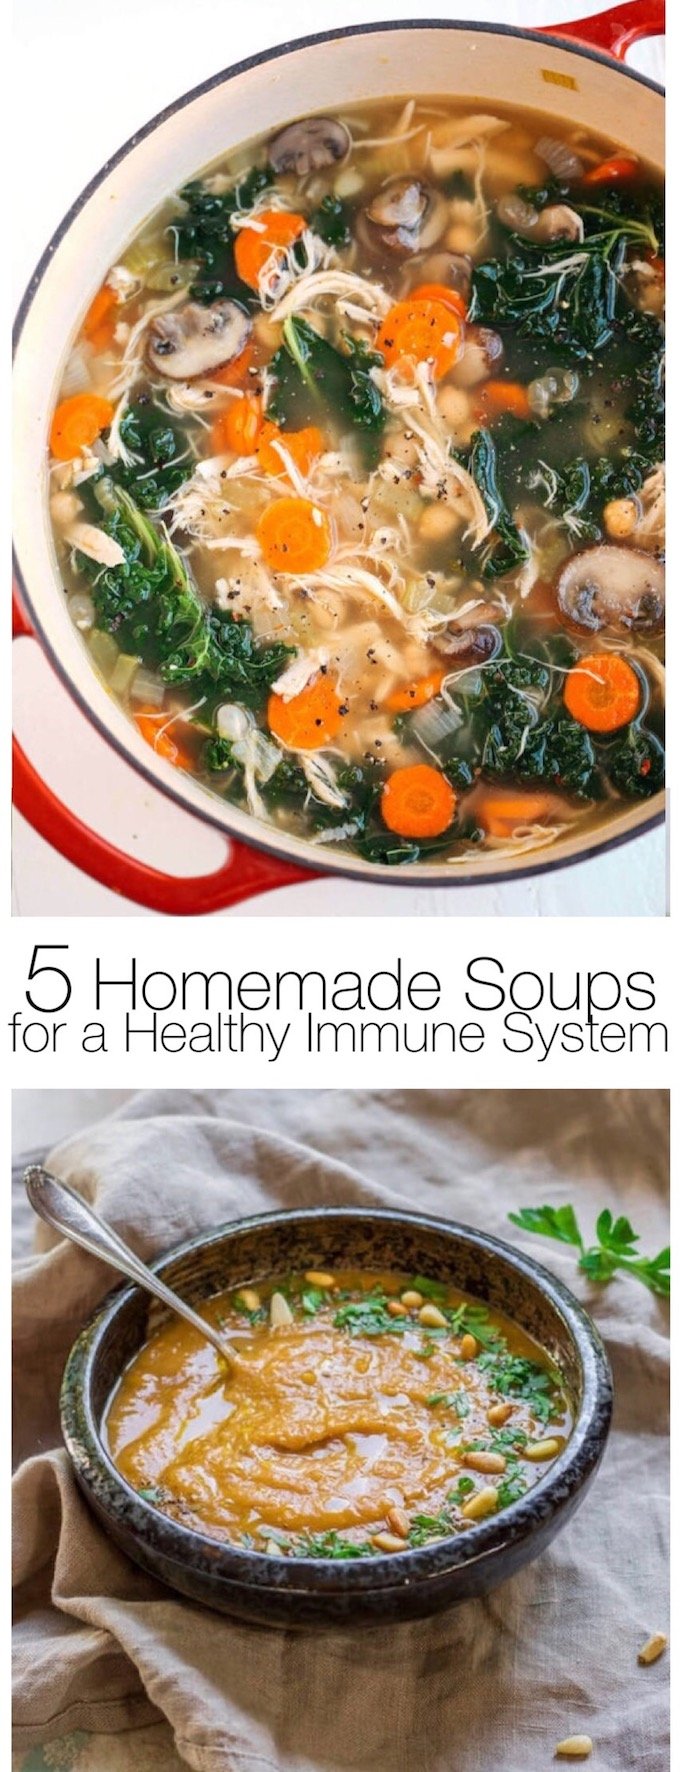 The 5 delicious homemade soups featured here include the best ingredients to fight the flu and encourage a healthy immune system! | healthy soup recipes | immune boosting soup recipes | immune boosting recipes | recipes for a heathy immune system || Design Dazzle #healthysouprecipes #immuneboostingrecipes #healthyrecipes